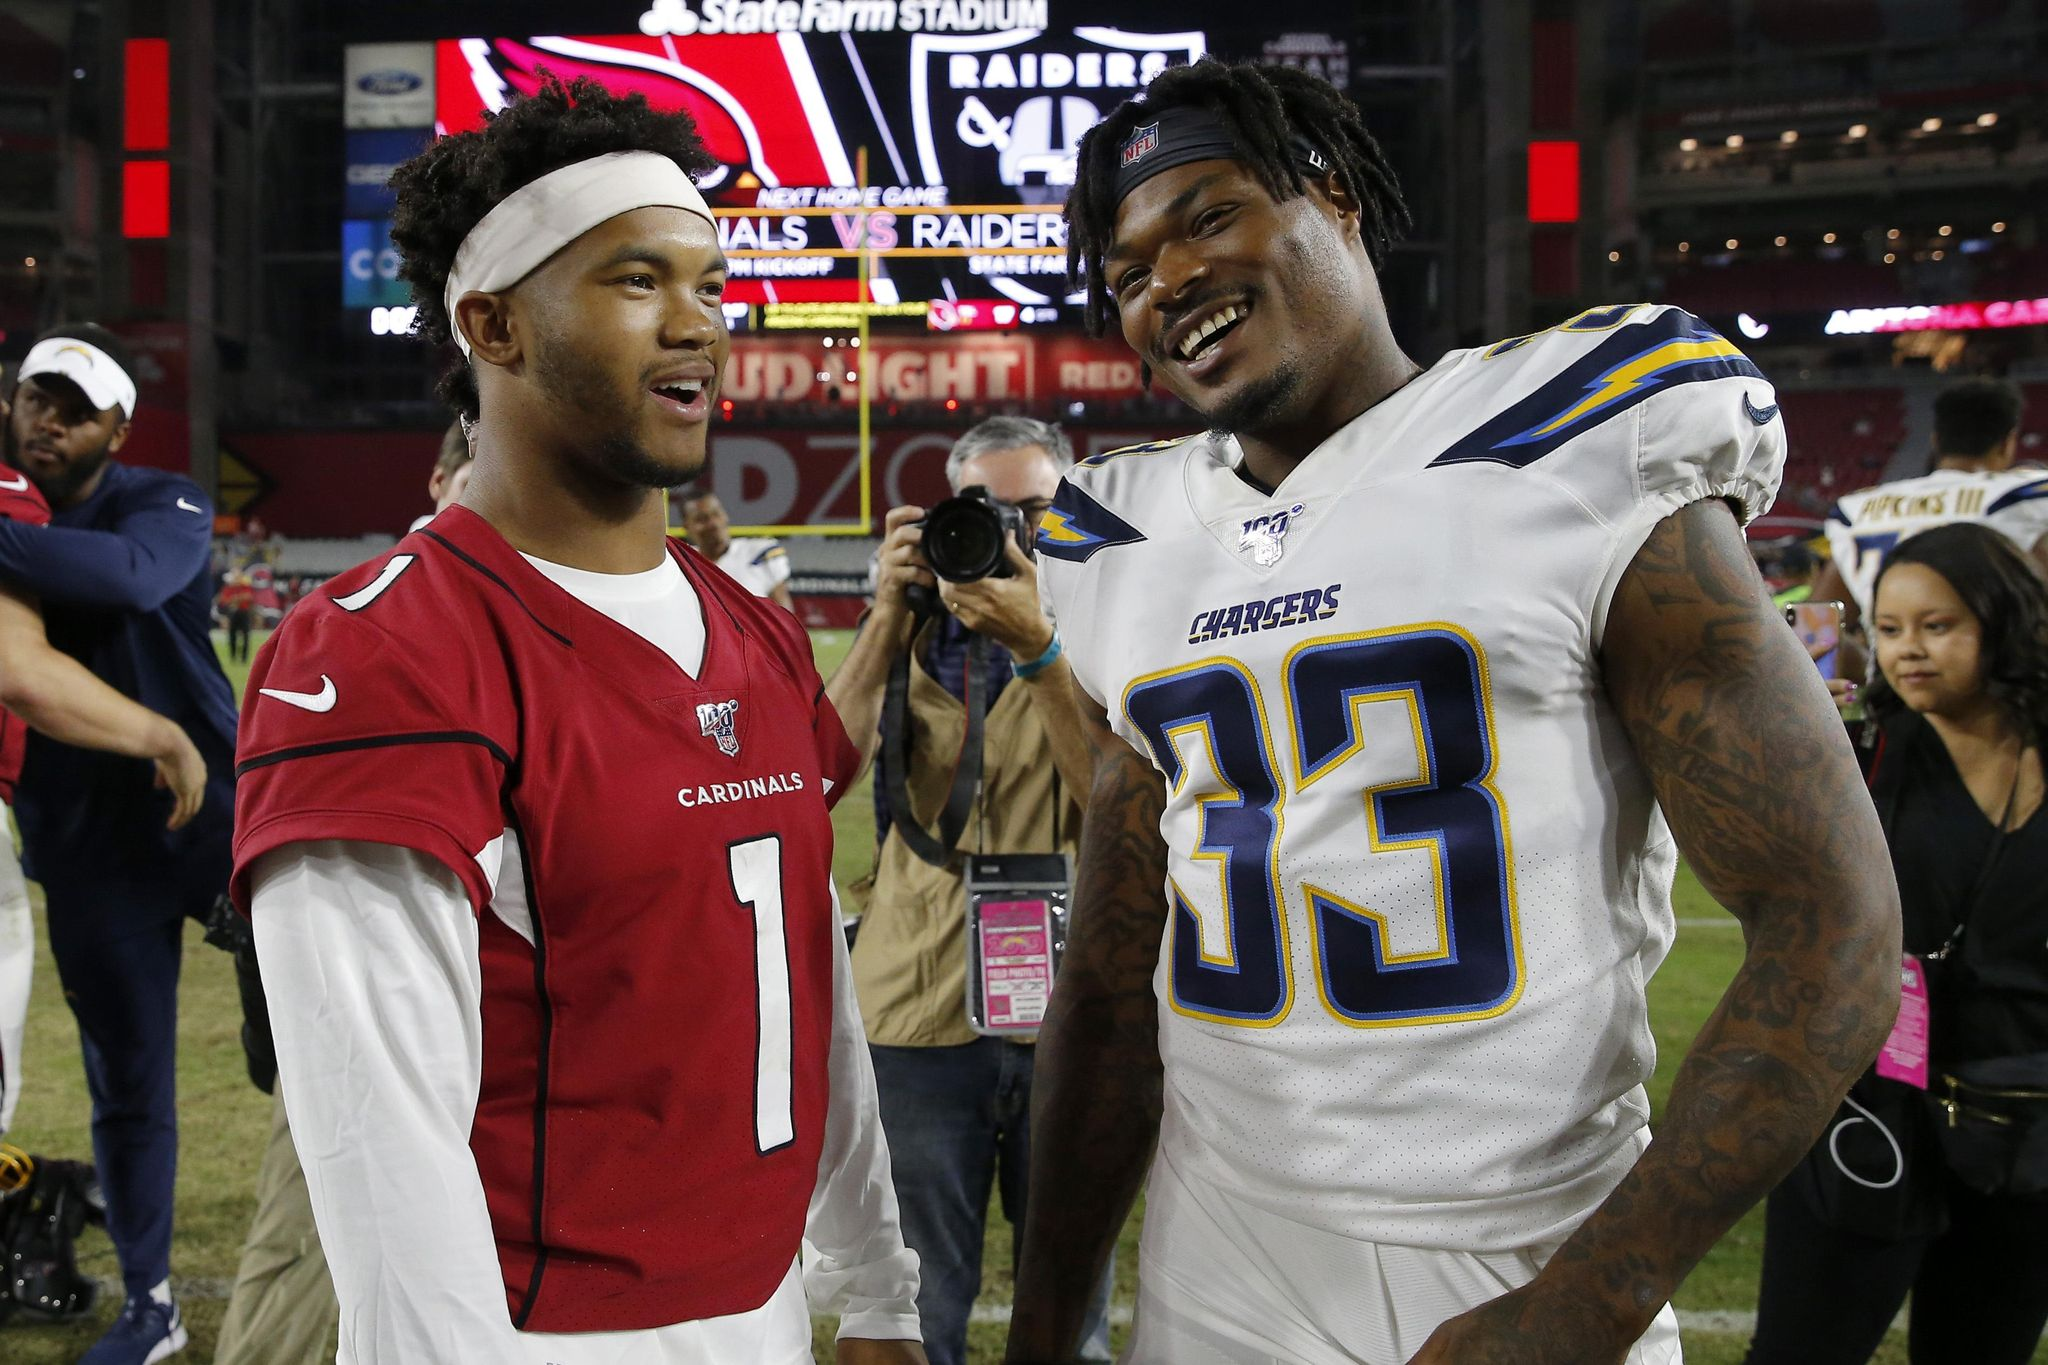 Chargers_cardinals_football_55462_s2048x1365